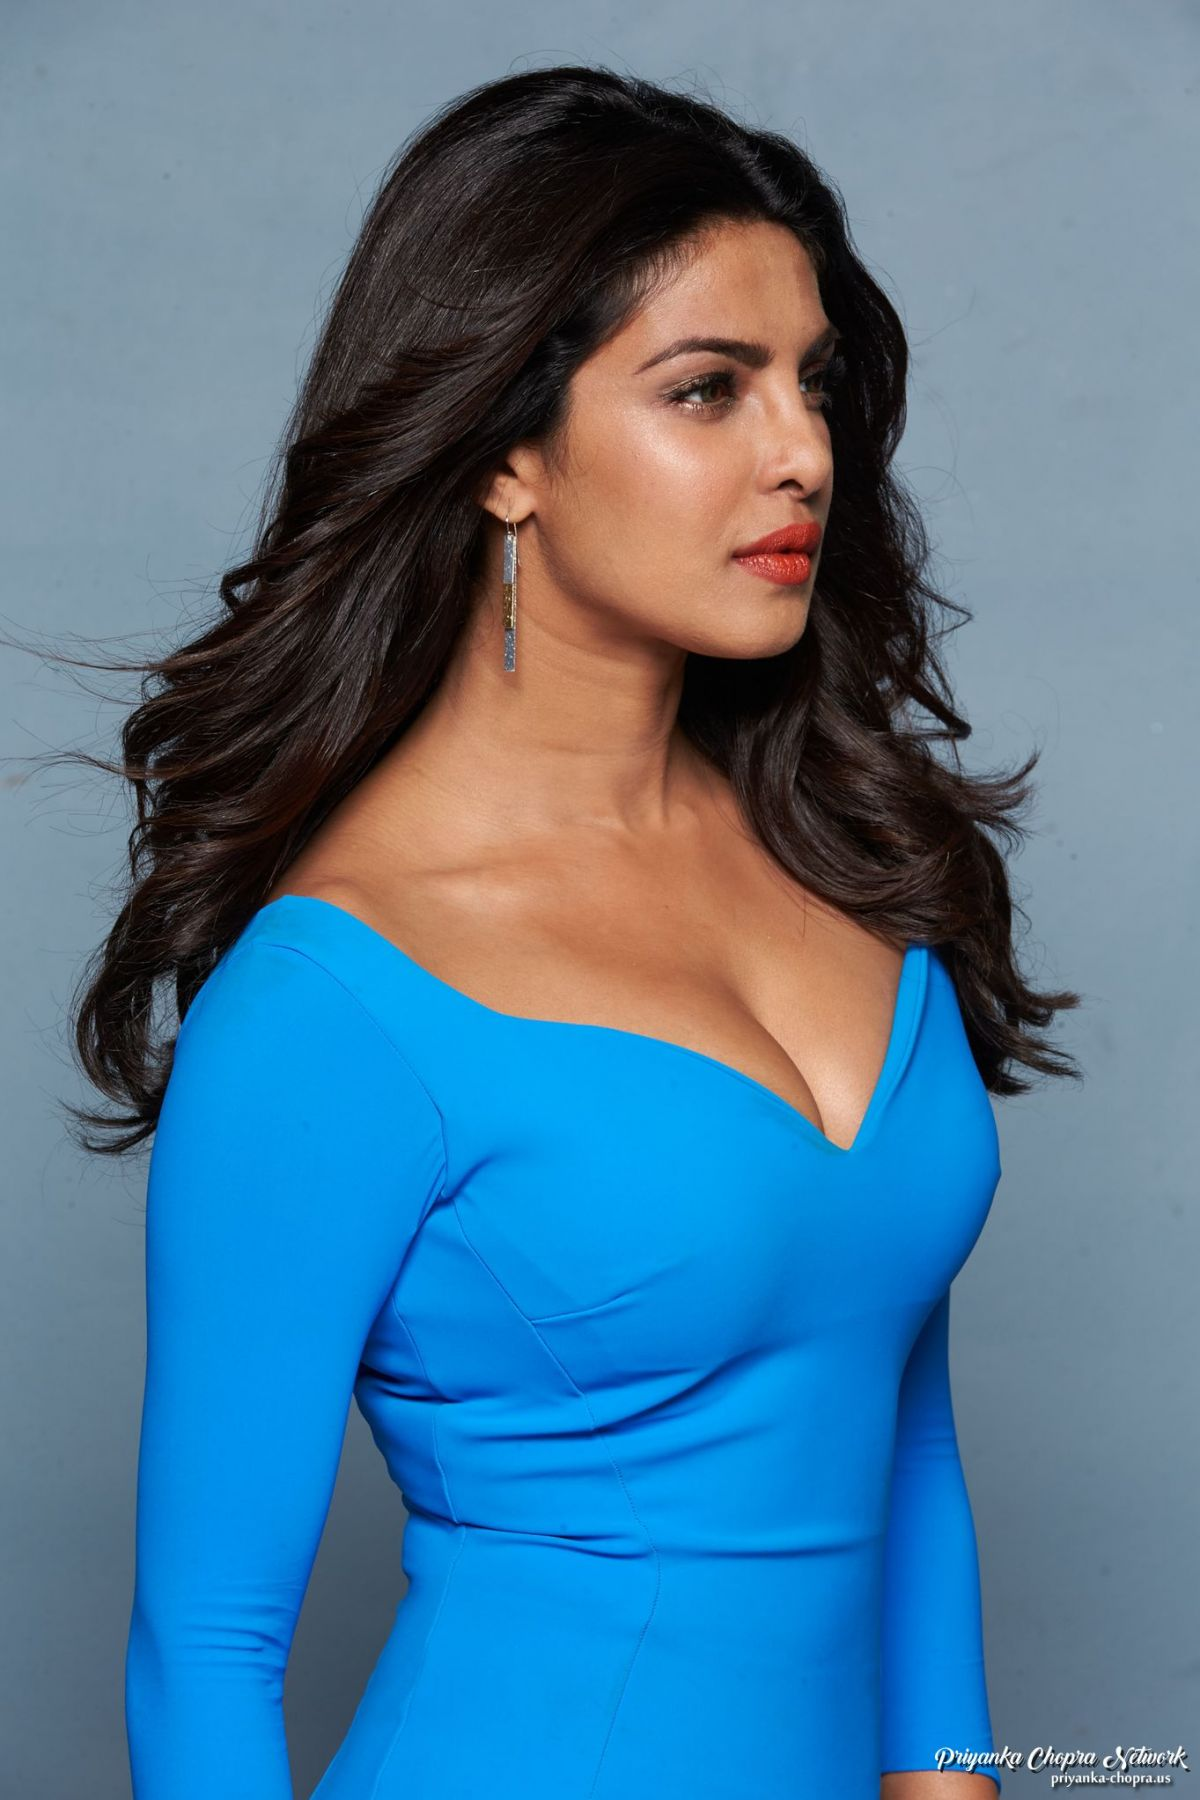 priyanka chopra - photo #15